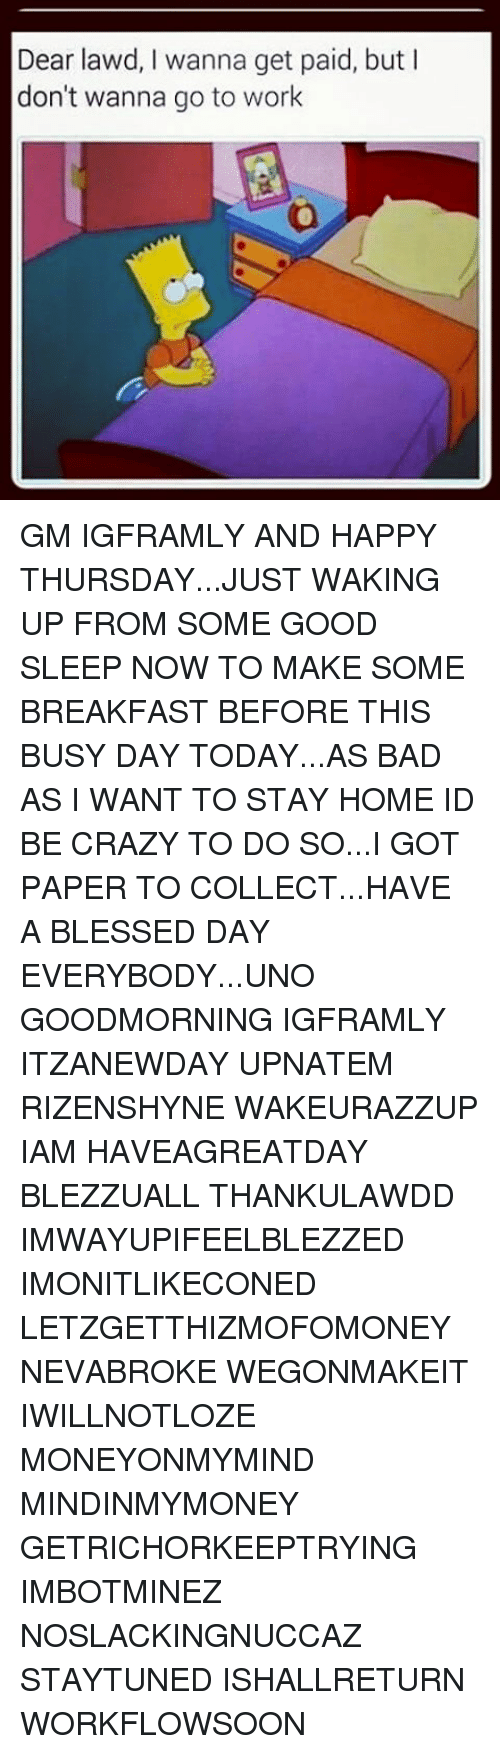 Having A Blessed Day: Dear lawd, I wanna get paid, but  l  don't wanna go to work GM IGFRAMLY AND HAPPY THURSDAY...JUST WAKING UP FROM SOME GOOD SLEEP NOW TO MAKE SOME BREAKFAST BEFORE THIS BUSY DAY TODAY...AS BAD AS I WANT TO STAY HOME ID BE CRAZY TO DO SO...I GOT PAPER TO COLLECT...HAVE A BLESSED DAY EVERYBODY...UNO GOODMORNING IGFRAMLY ITZANEWDAY UPNATEM RIZENSHYNE WAKEURAZZUP IAM HAVEAGREATDAY BLEZZUALL THANKULAWDD IMWAYUPIFEELBLEZZED IMONITLIKECONED LETZGETTHIZMOFOMONEY NEVABROKE WEGONMAKEIT IWILLNOTLOZE MONEYONMYMIND MINDINMYMONEY GETRICHORKEEPTRYING IMBOTMINEZ NOSLACKINGNUCCAZ STAYTUNED ISHALLRETURN WORKFLOWSOON